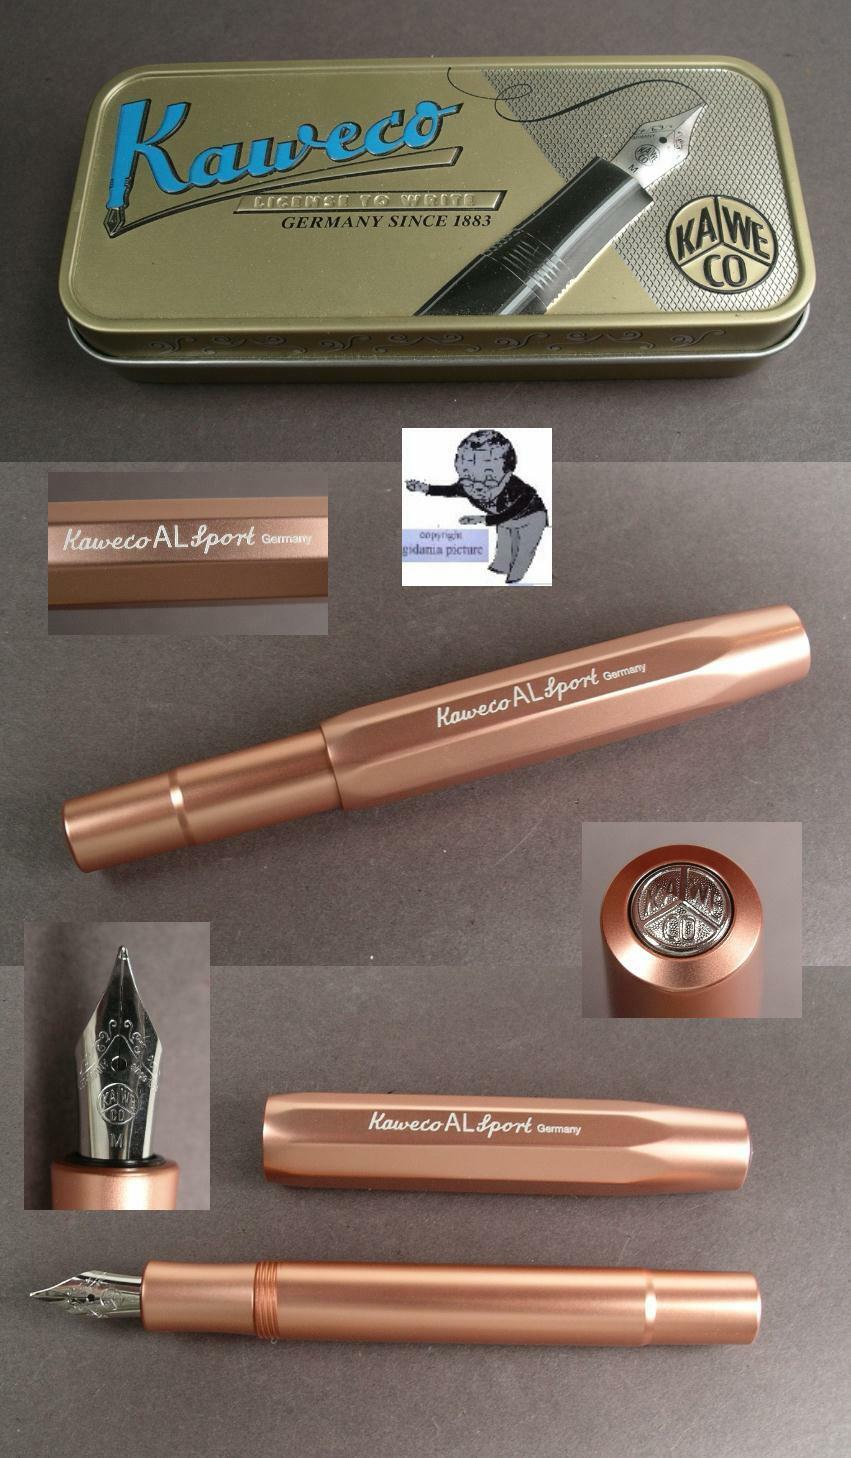 Kaweco Al Sports Fountain Pen Holder Made of Aluminium in pink gold New